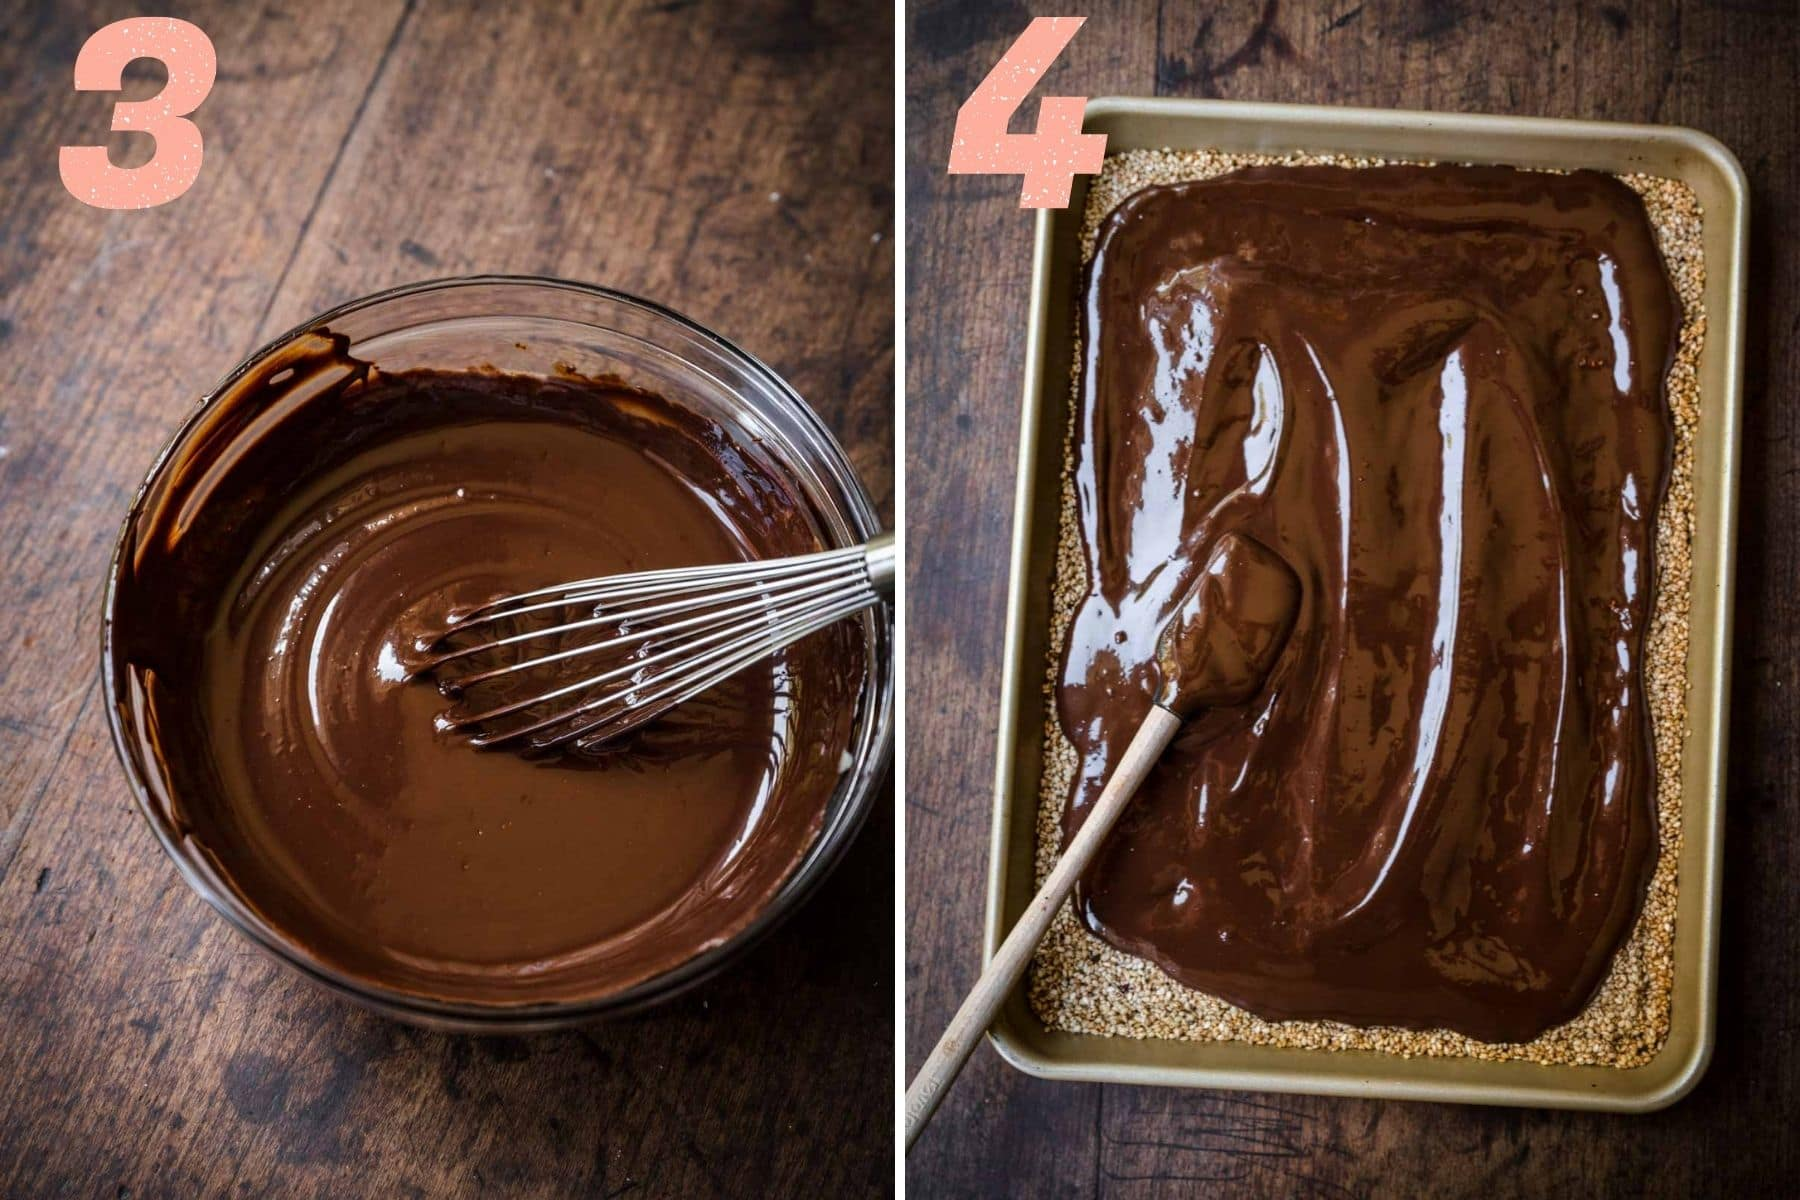 On the left: chocolate melted and mixed. On the right: chocolate being smeared on top of the sesame seeds.